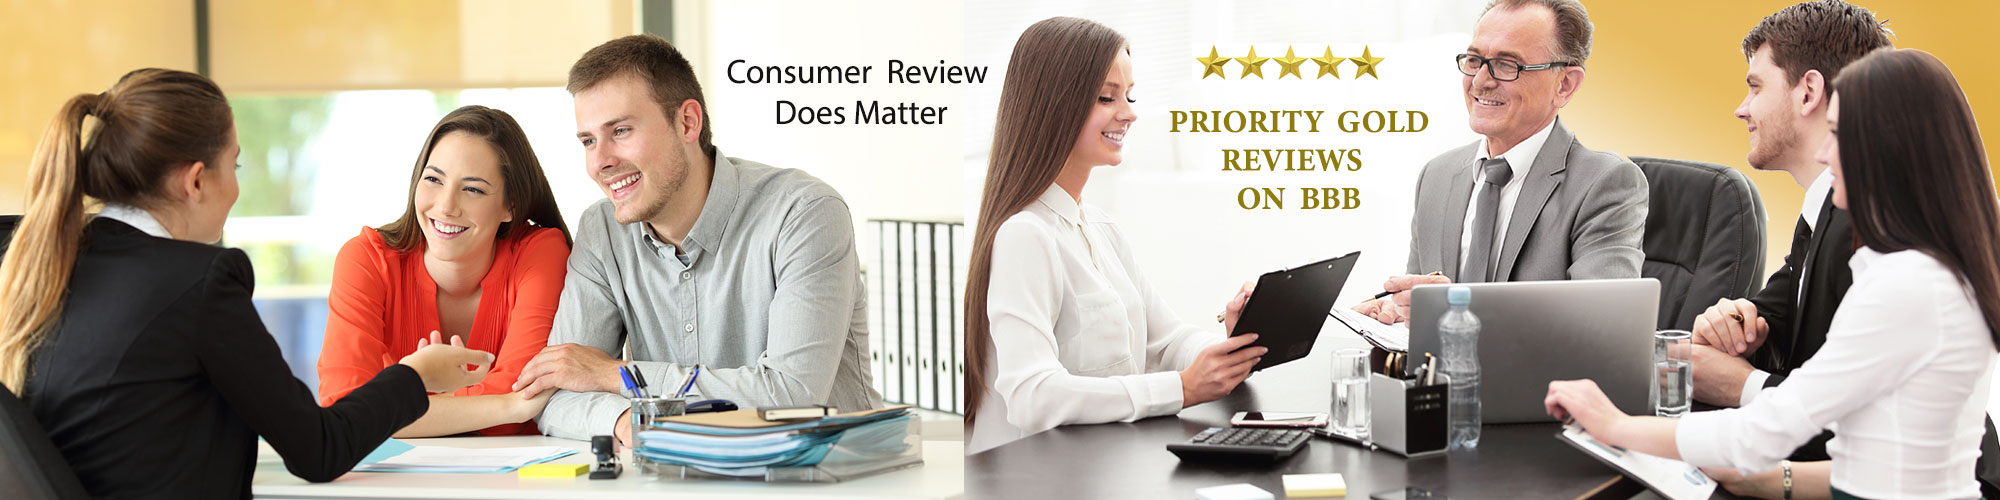 Priority Gold Reviews on Better Business Bureau